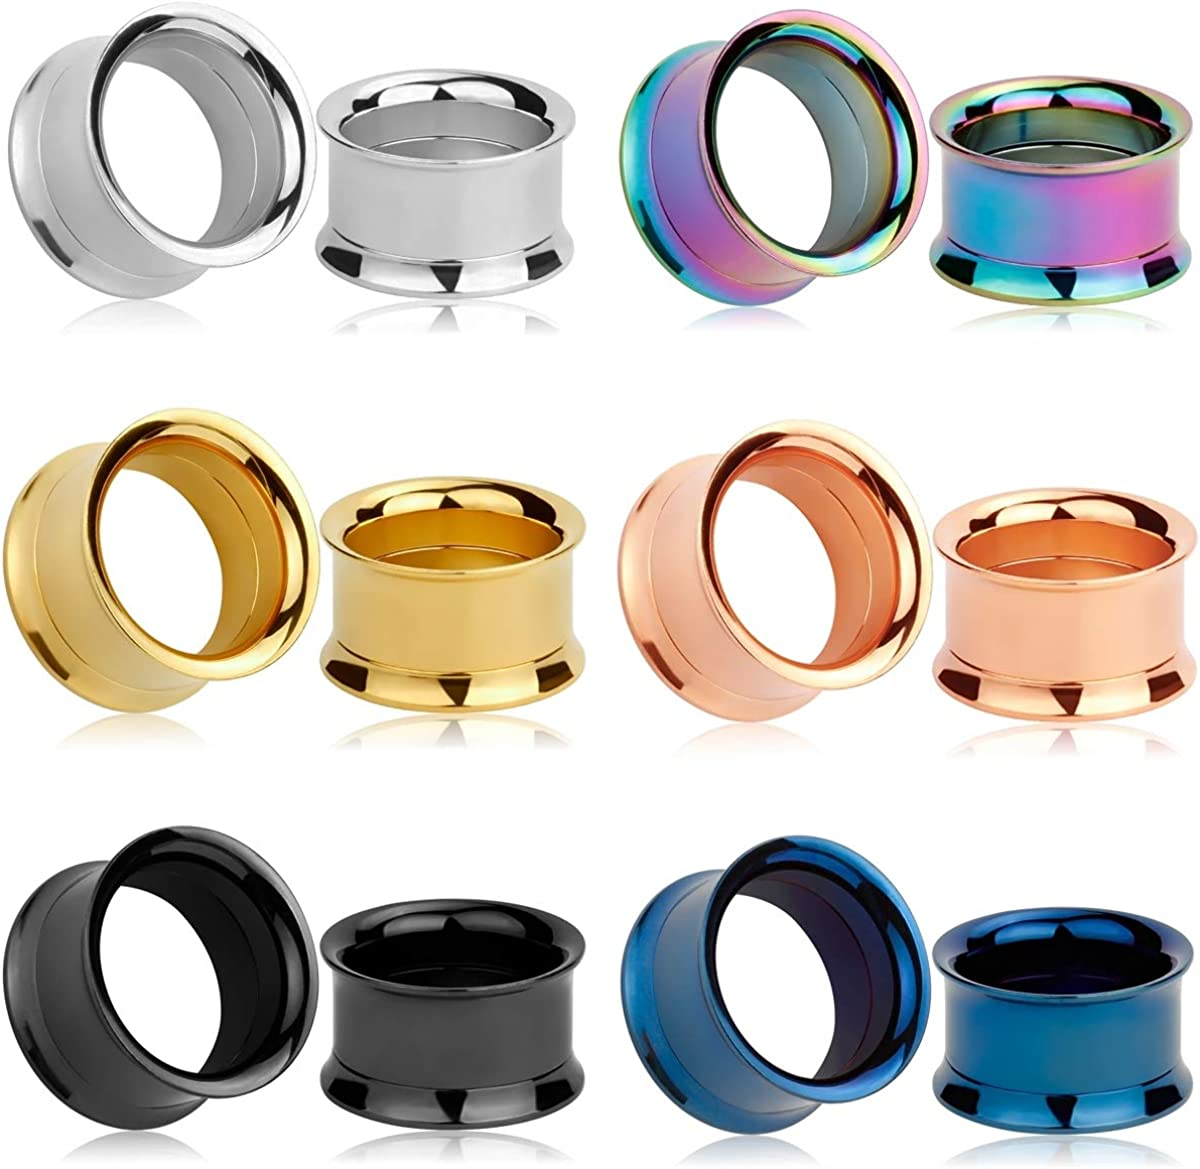 TBOSEN Set of 12 pcs Stainless Steel Ear Plugs Large Double Flare Alloy Gauges Stretching Screw Fit Tunnels Gauge 2g - 1 inch